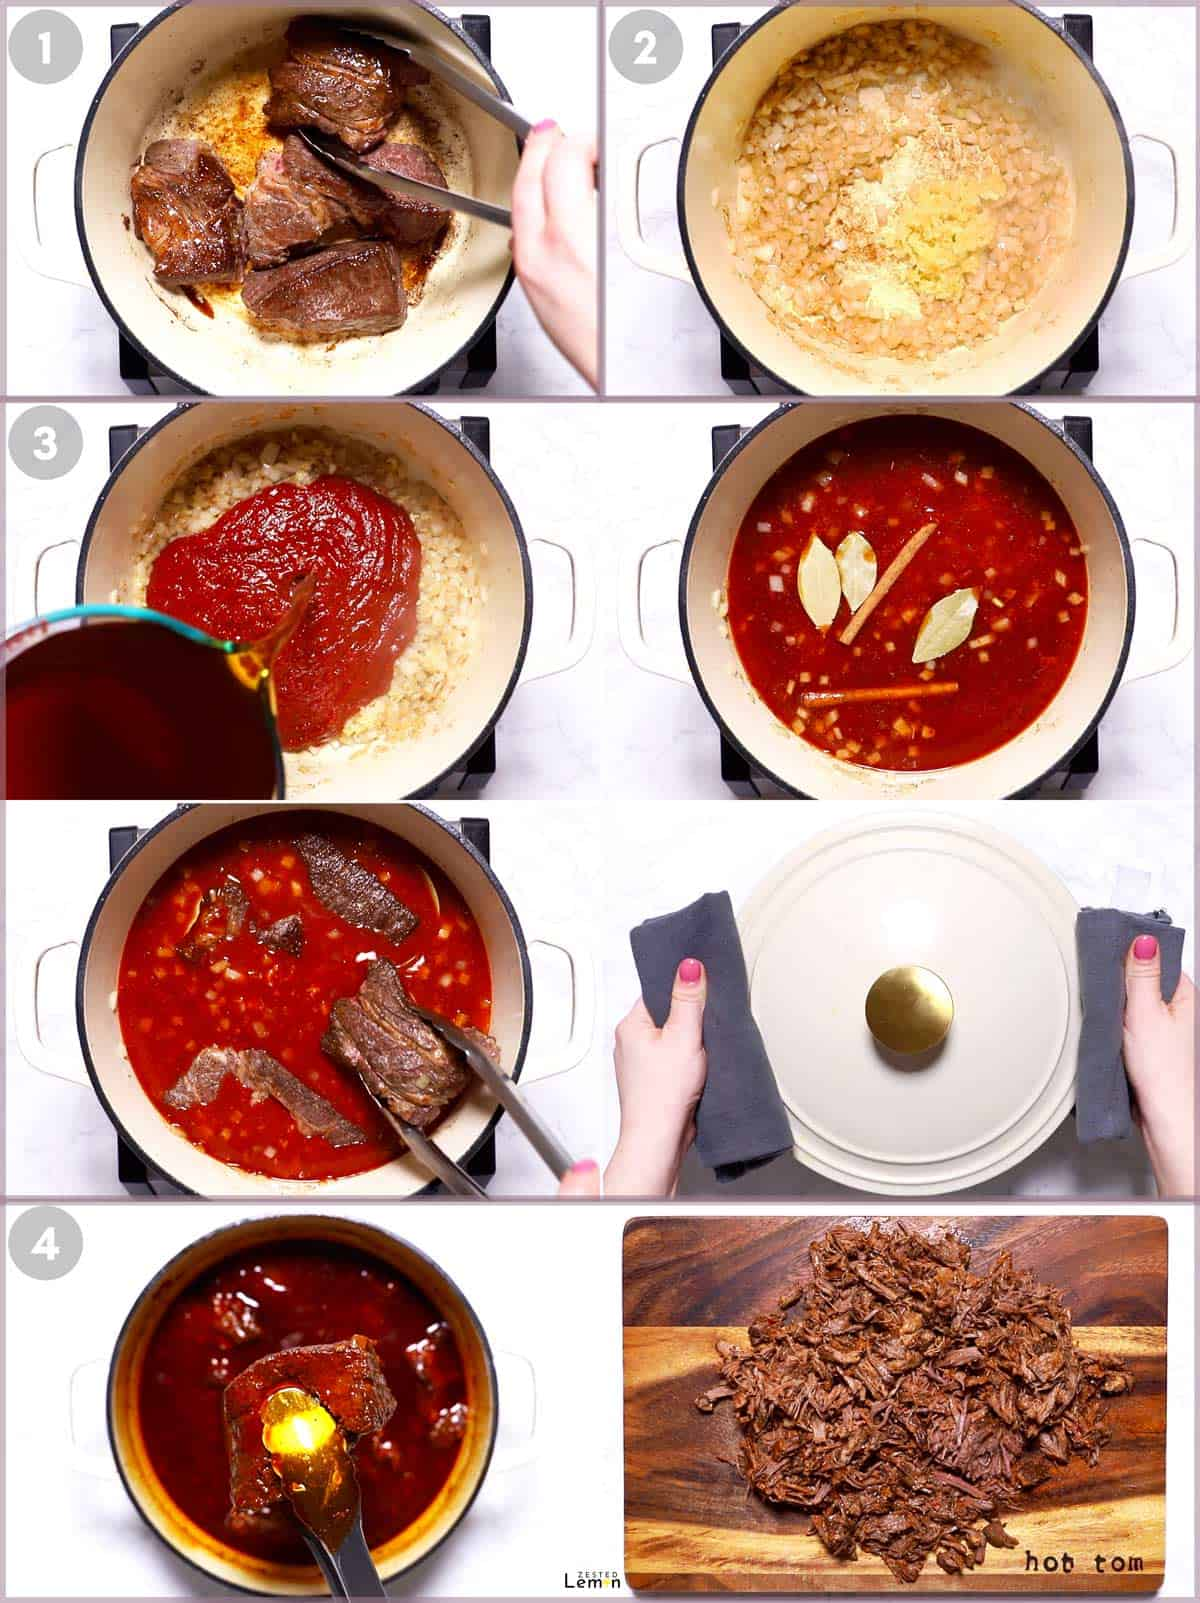 Instructions to make shredded beef for Birria Tacos.